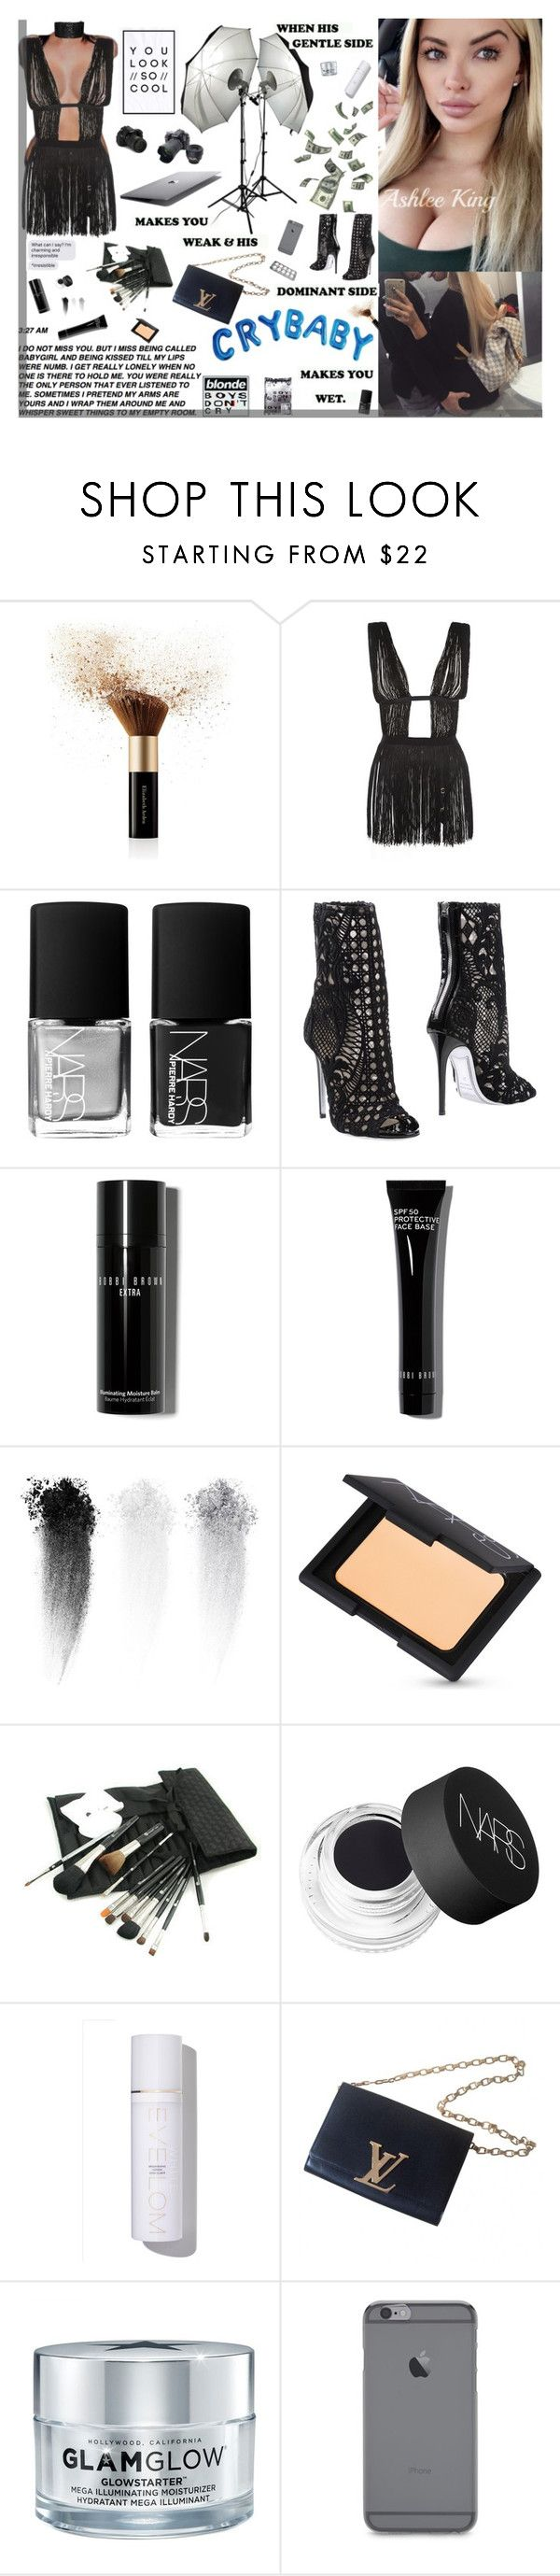 """""""Codeine cups paint a picture so vivid 🍇"""" by ashlee-lynn ❤ liked on Polyvore featuring Elizabeth Arden, Agent Provocateur, NARS Cosmetics, Balmain, Bobbi Brown Cosmetics, Glo Minerals, Eve Lom, Louis Vuitton, Boodles and GlamGlow"""